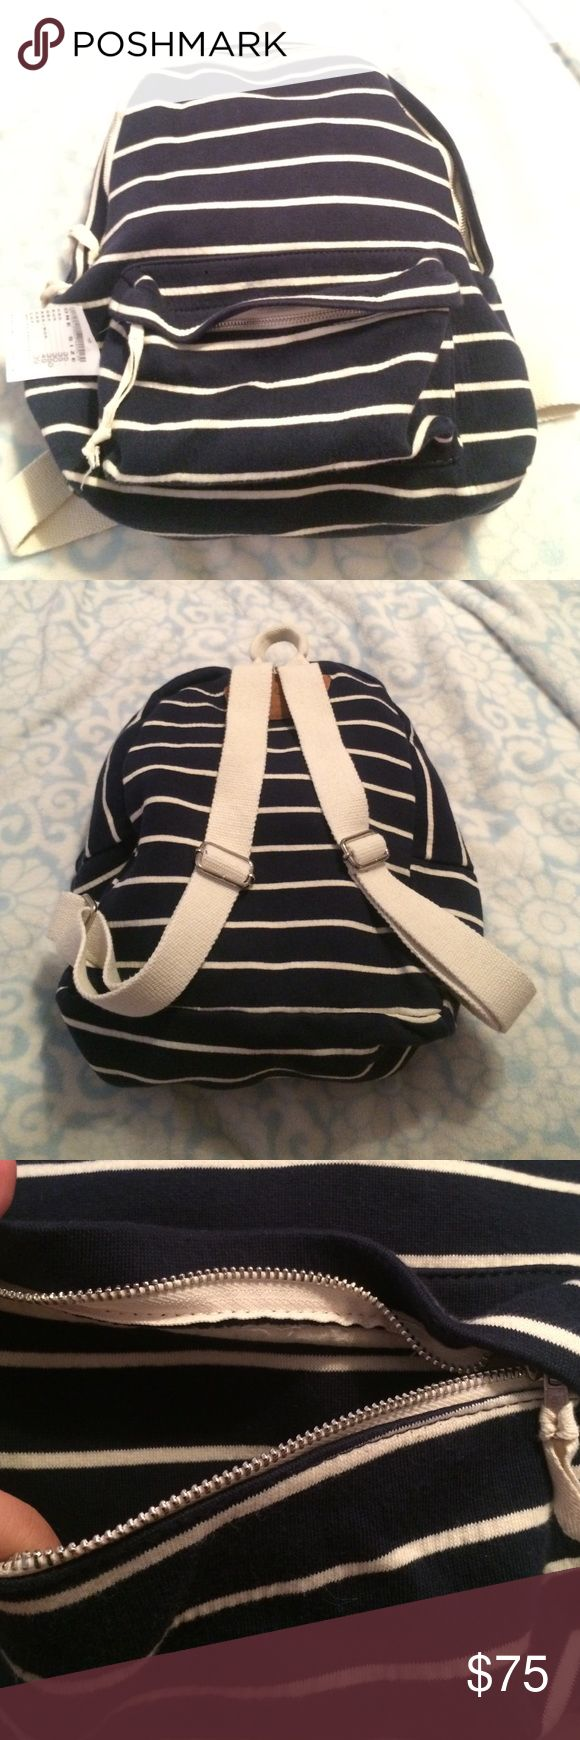 NWT Brandy Melville striped backpack John galt Brand new Brandy Melville / John galt backpack. It's striped and has adjustable straps. It's the full size backpack too not the mini one! Cloth backpack with canvas lining super cute!!!' I love it. It also has a zipper front pocket too Brandy Melville Bags Backpacks